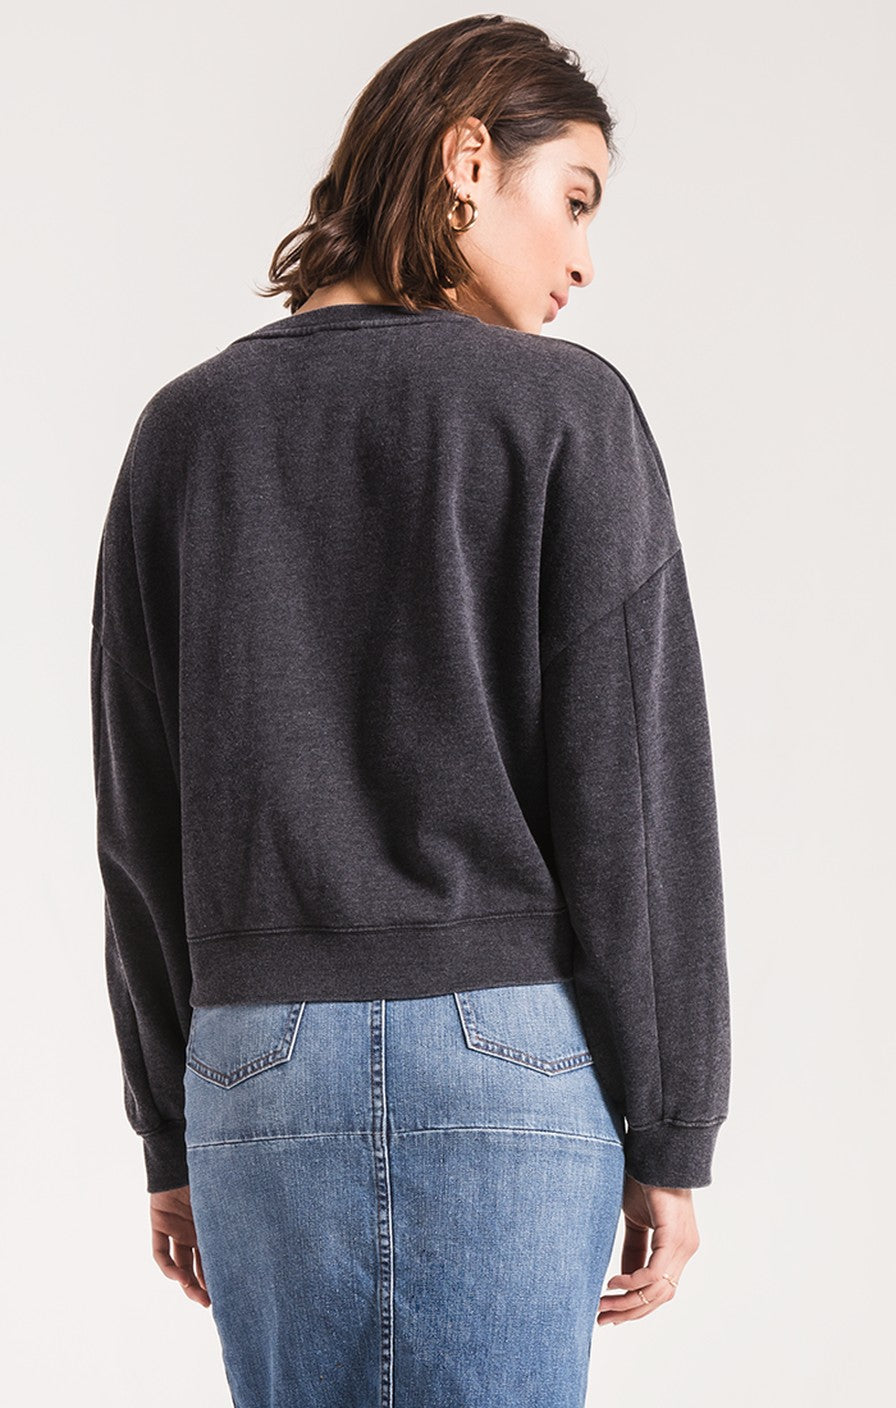 The Oversized Fleece Pullover